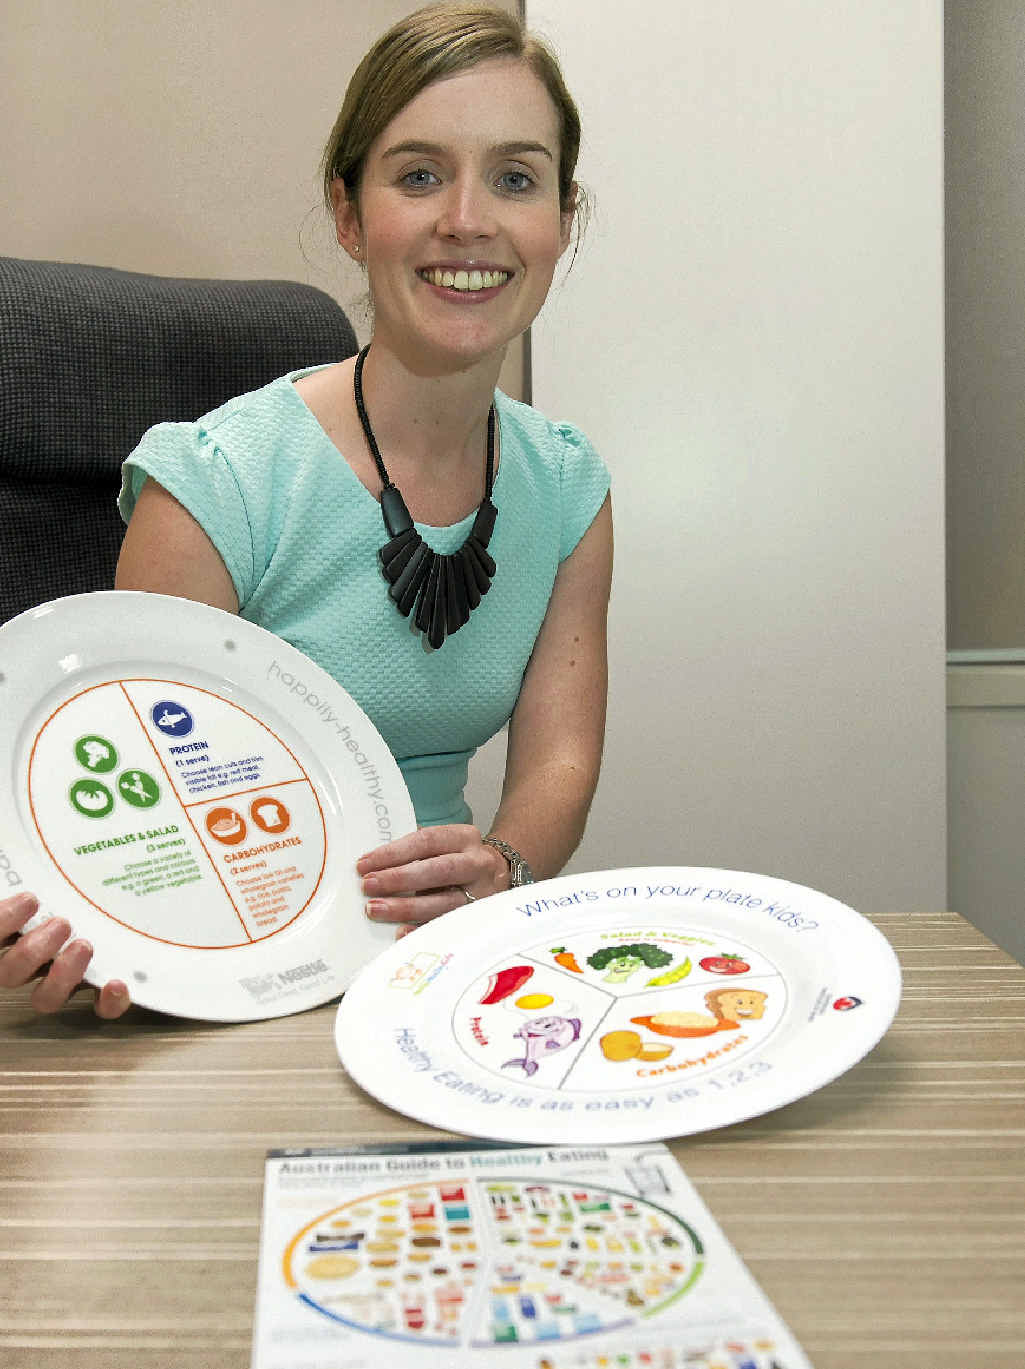 KICK YOUR GOALS: Queensland Centre for Digestive Medicine dietician Dr Hannah Slattery shares her tips on how to keep a healthy diet as a New Year's resolution.